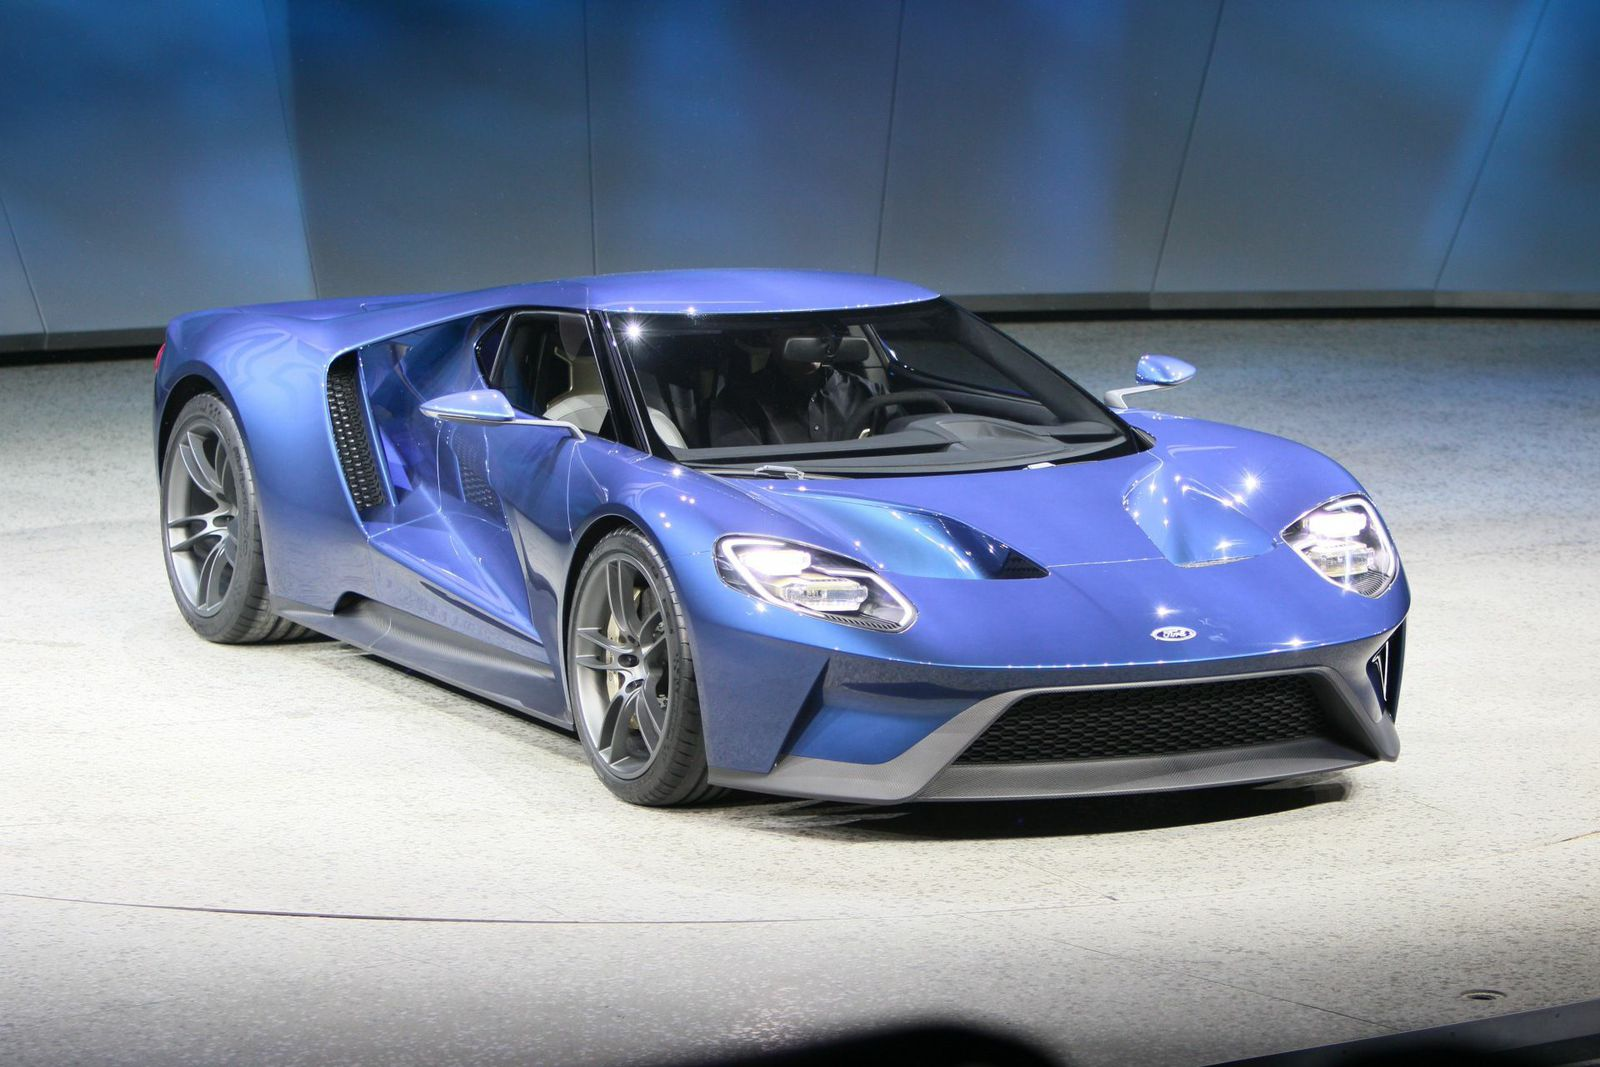 An Ecoboost Motor We Think Its The Smartest Hypercar Production Decision Yet And Is Fords Big Bet To Build Its Performance And Efficiency Brands